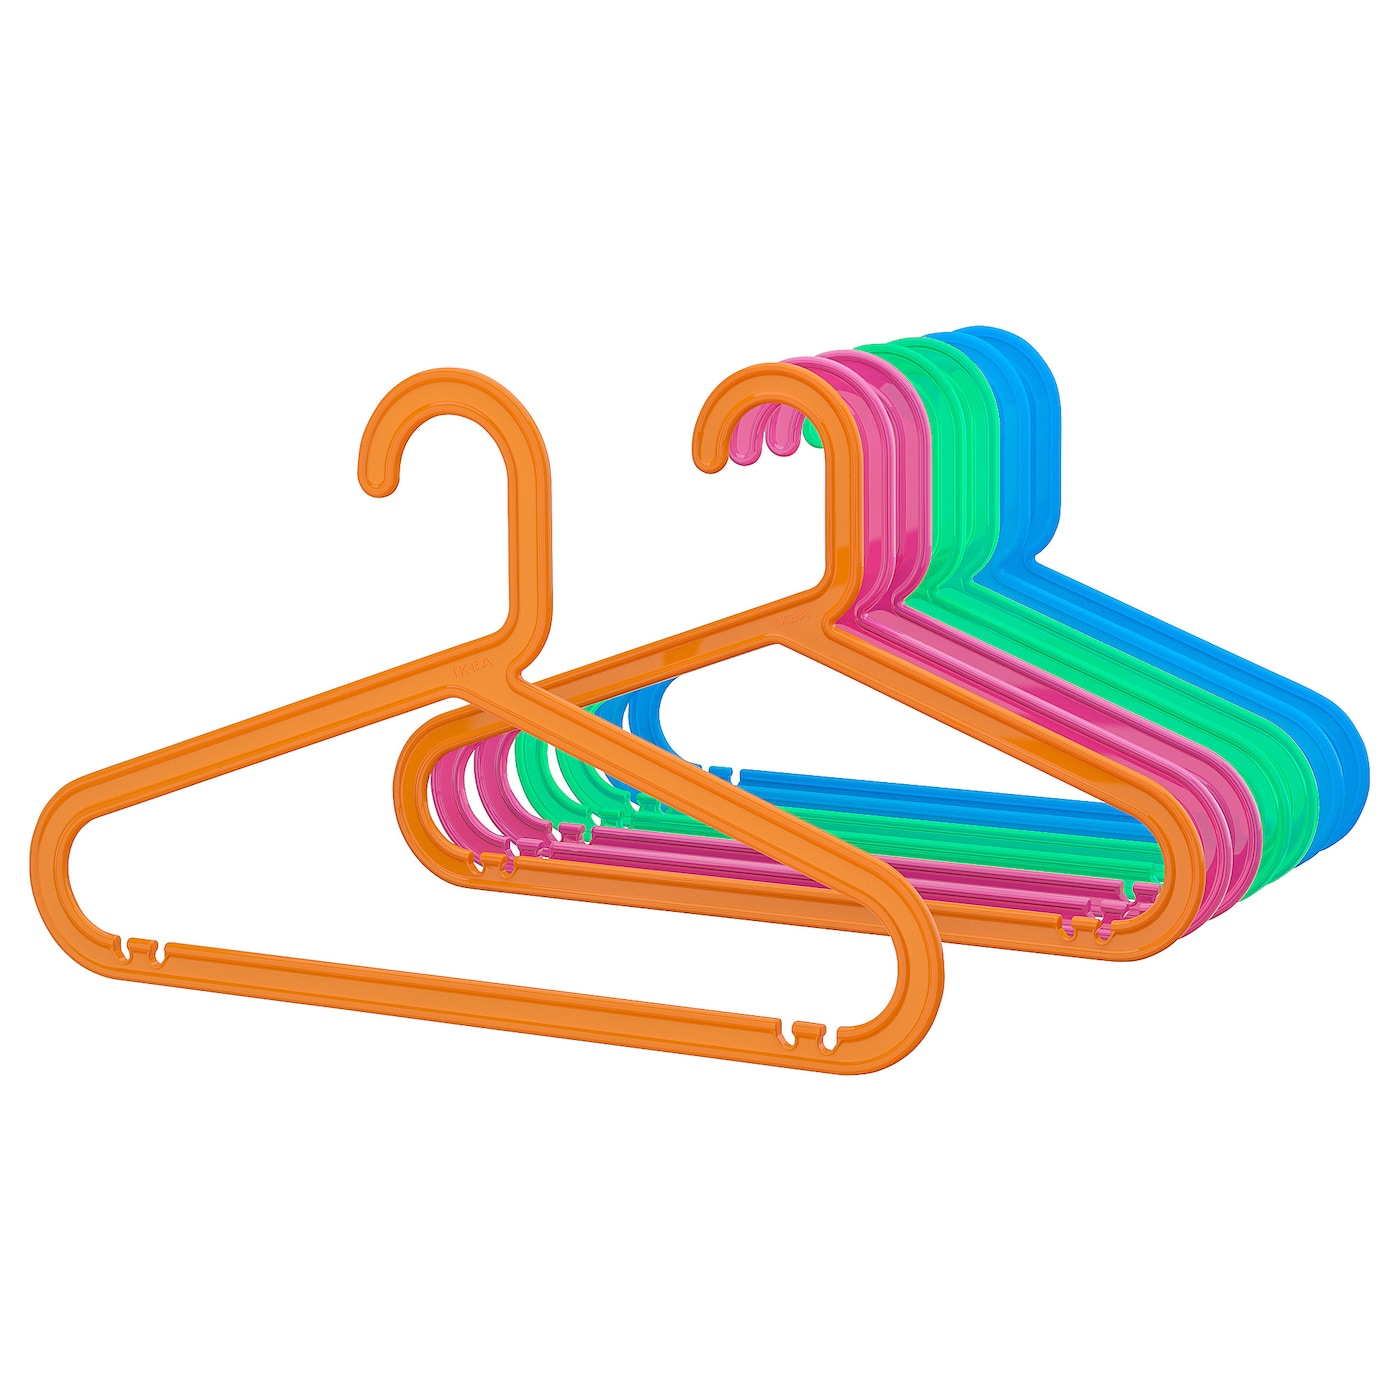 IKEA BAGIS children's coat-hanger The plastic is flexible to minimise the risk of breaking.